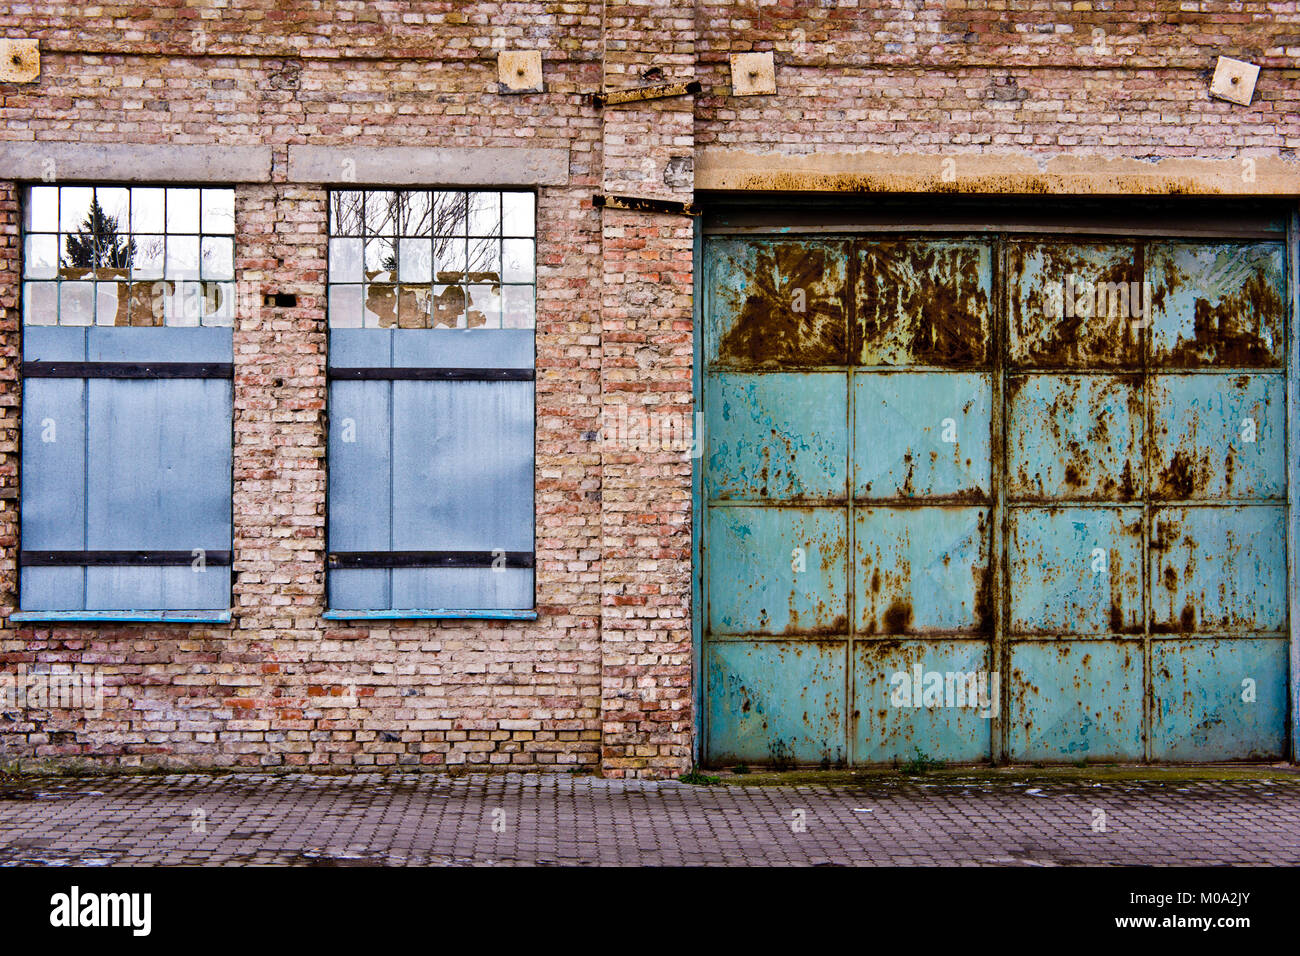 windows and door of a warehouse in abandon - Stock Image